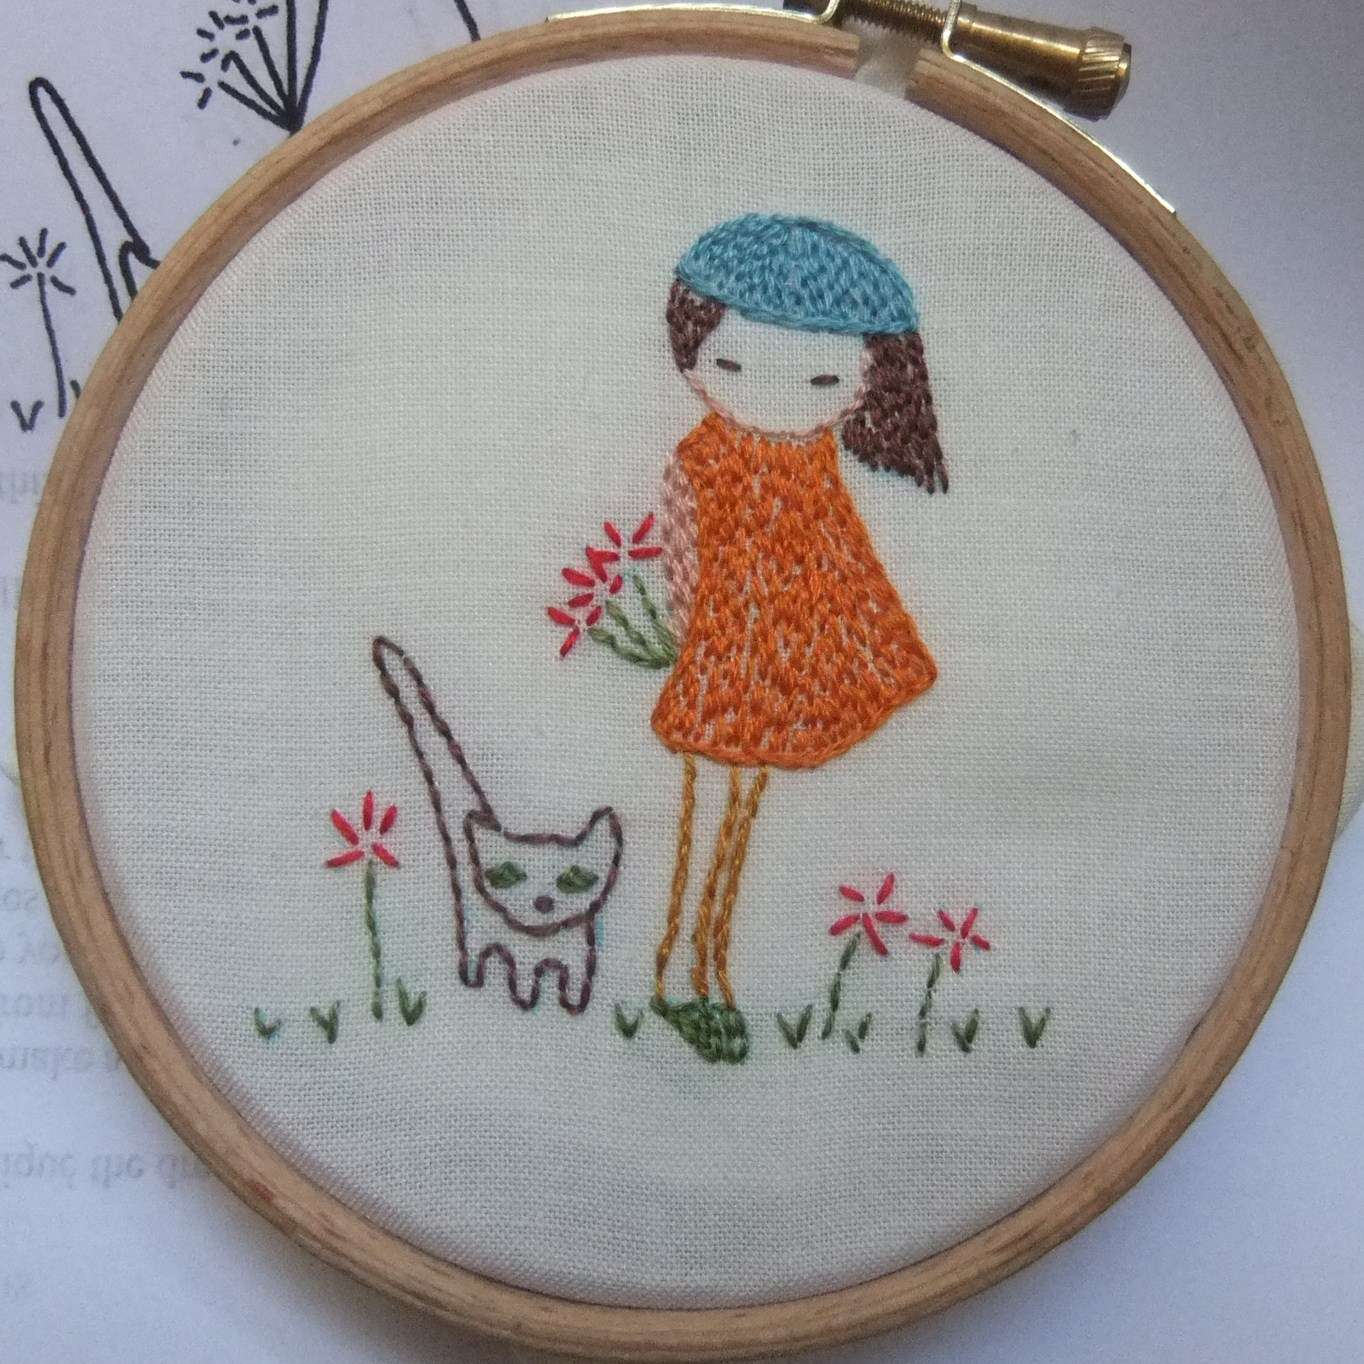 How to transfer embroidery designs free patterns